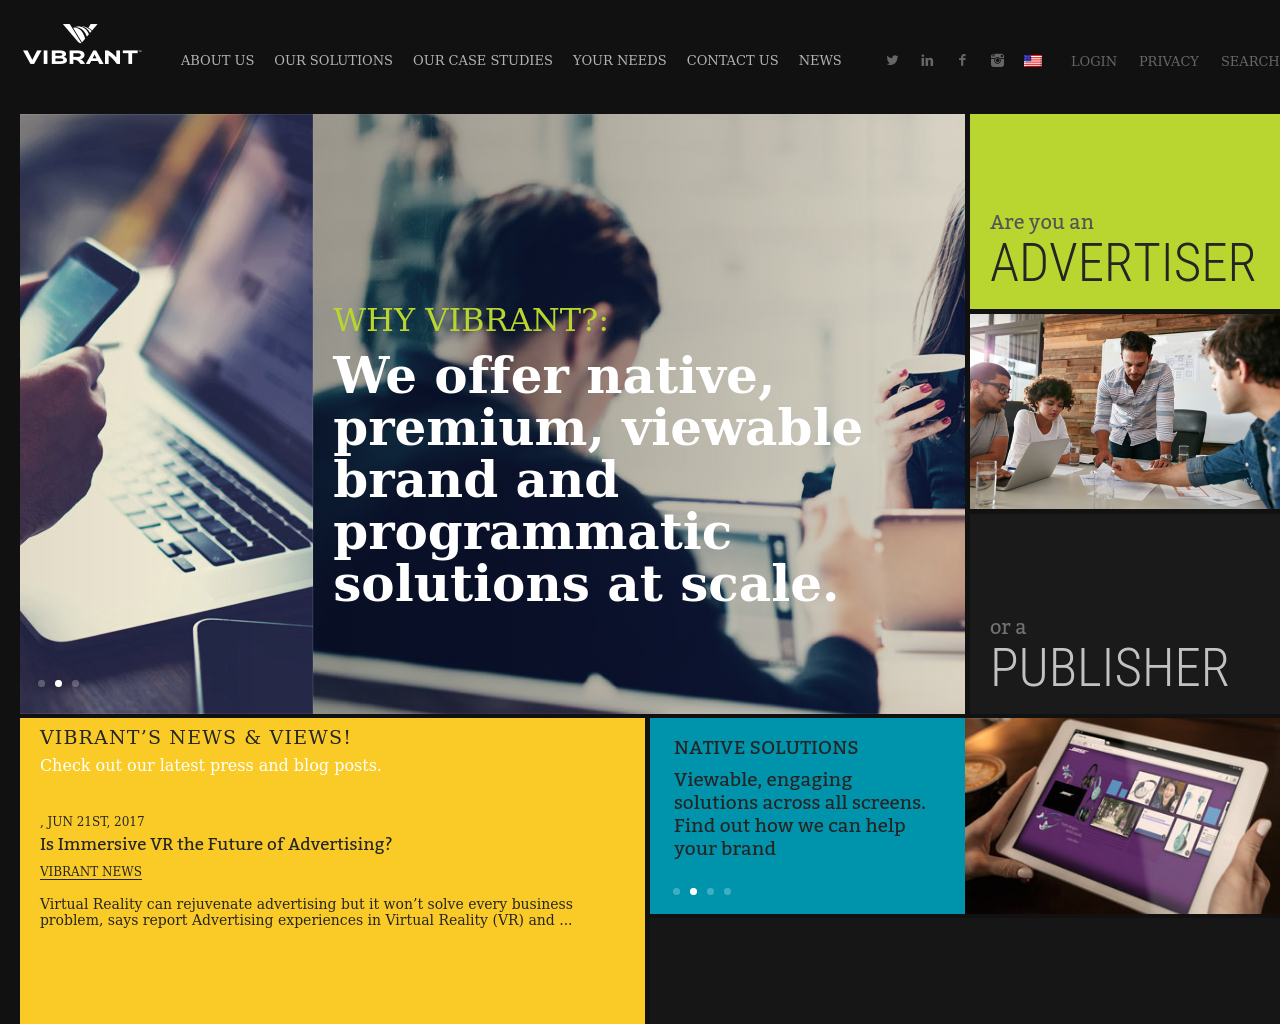 Vibrant-Media-Advertising-Reviews-Pricing